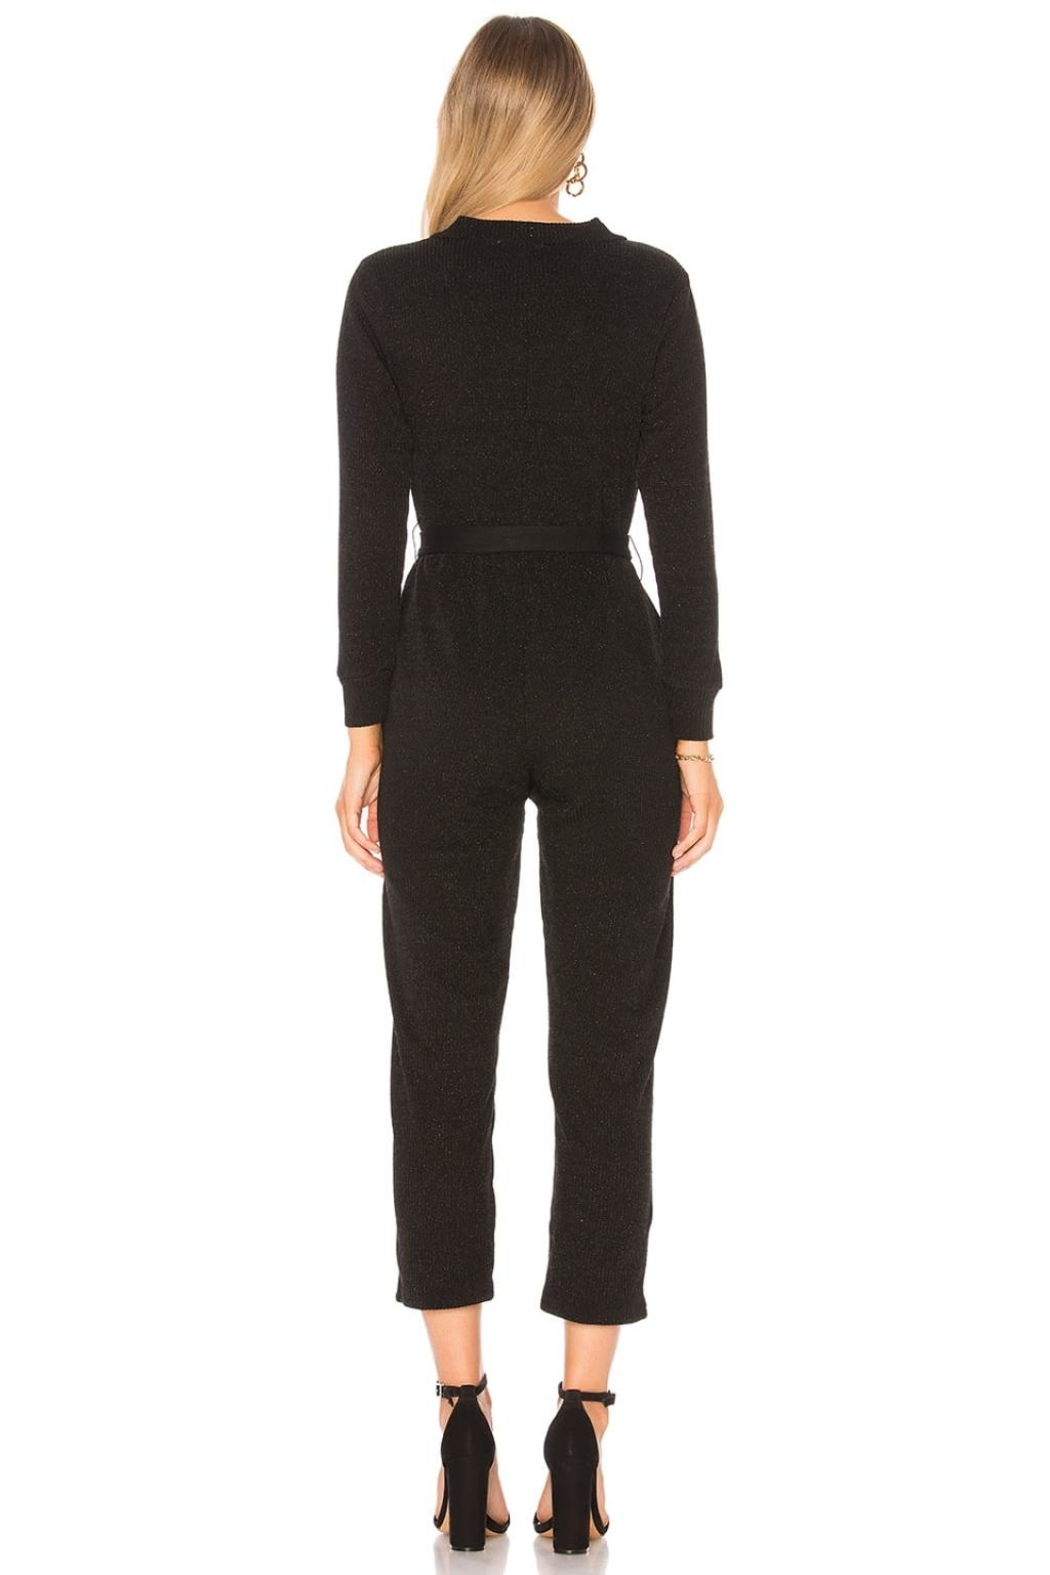 Tularosa  Veronica Knit Jumpsuit - Front Full Image